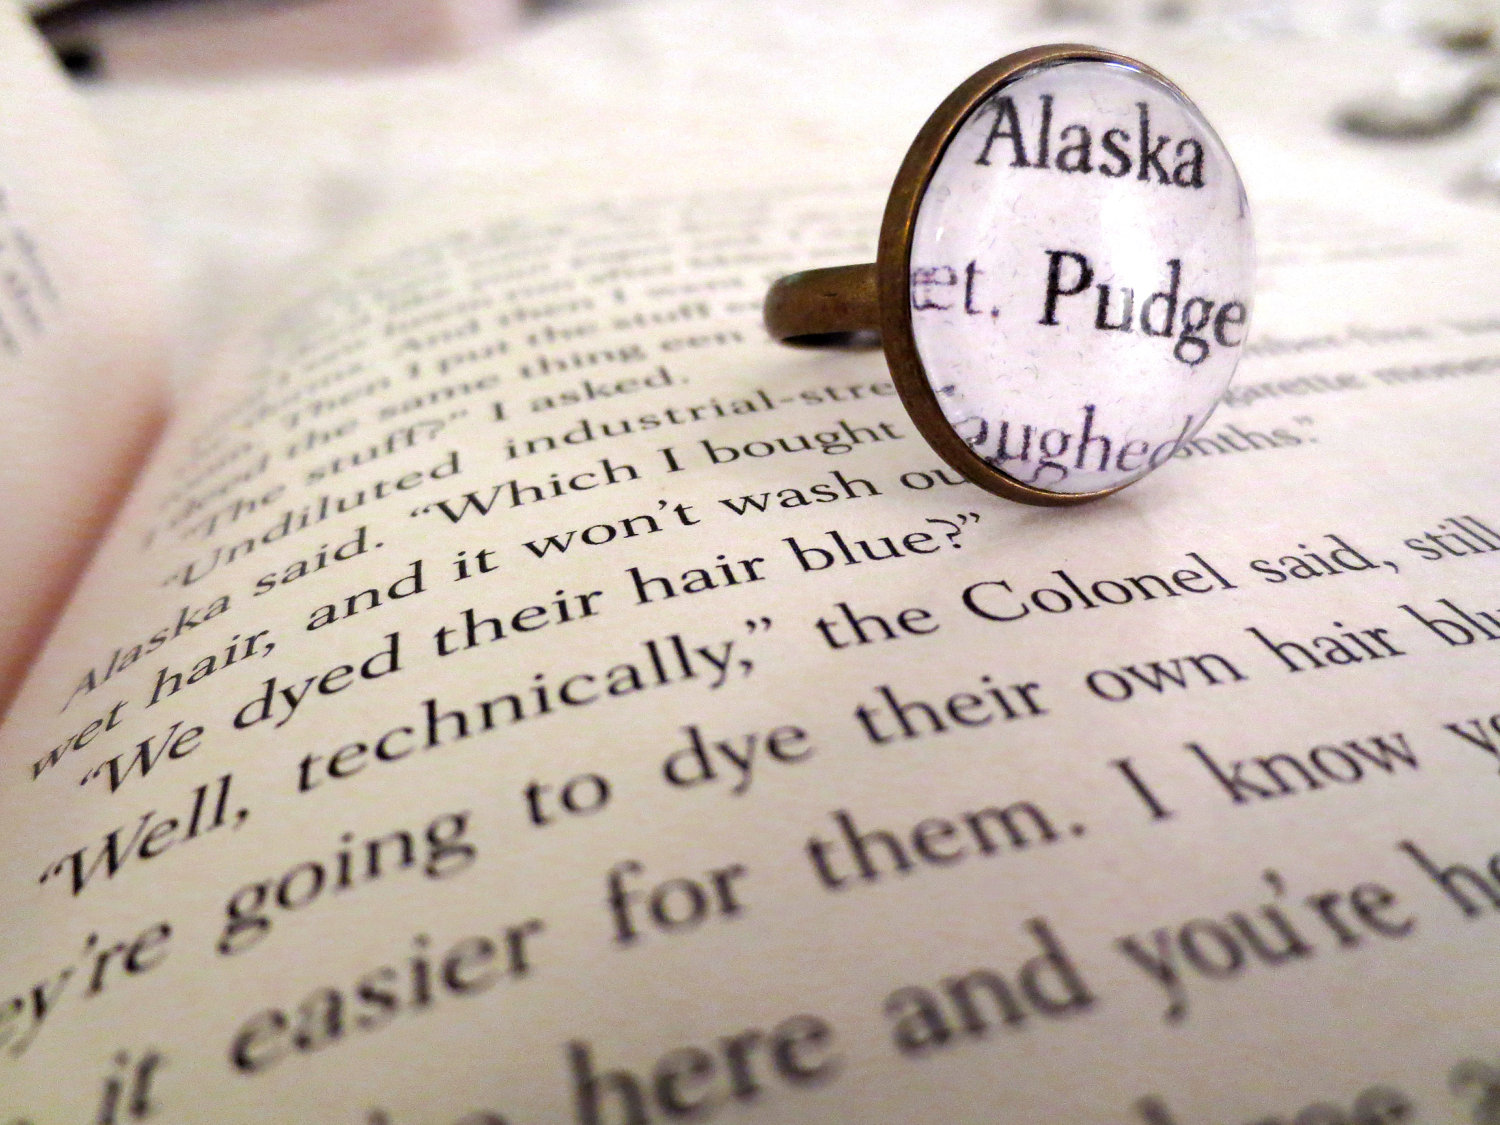 Drawing Looking For Alaska Alaska: Looking For Alaska Alaska And Pudge Antiqued Bronze